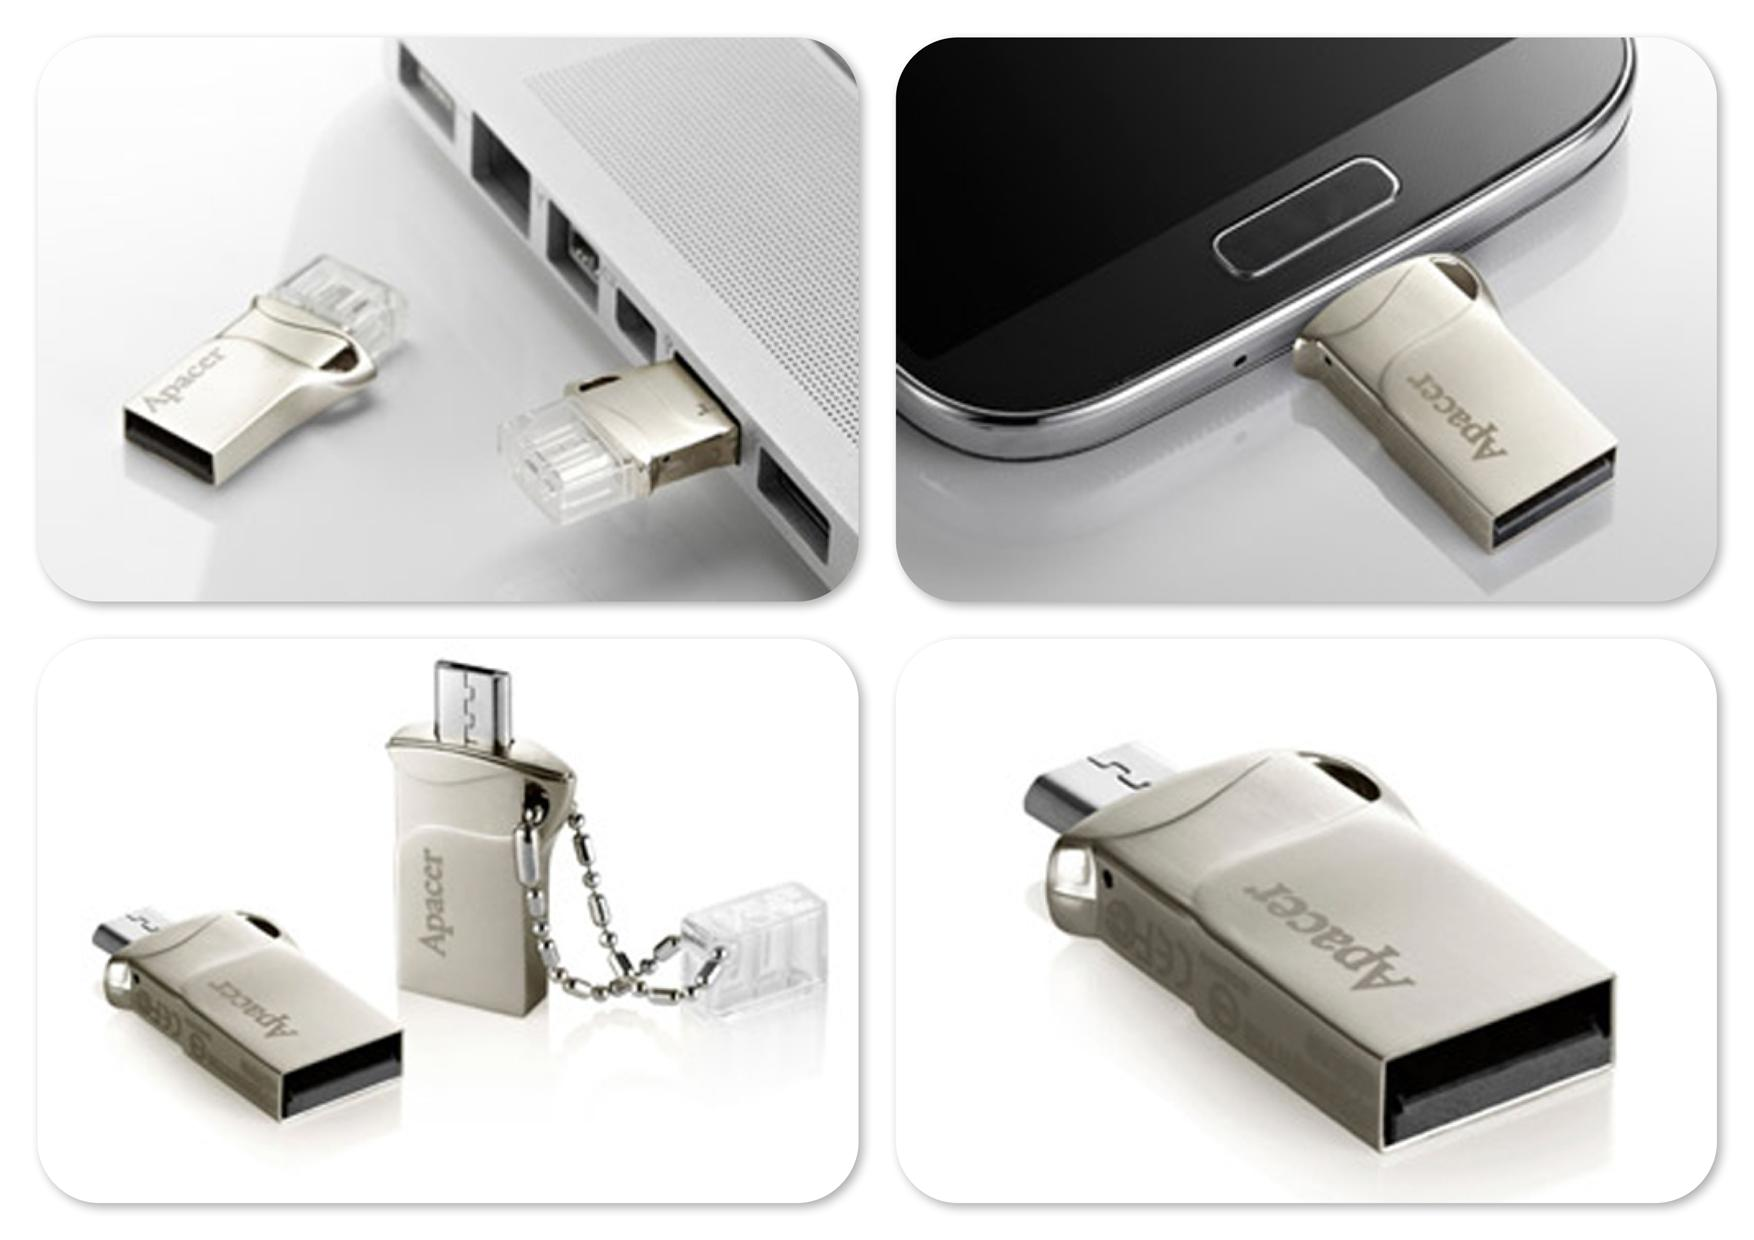 Bdotcom = APACER 32GB AH173 USB OTG Mobile Flash Drive Thumb Drive